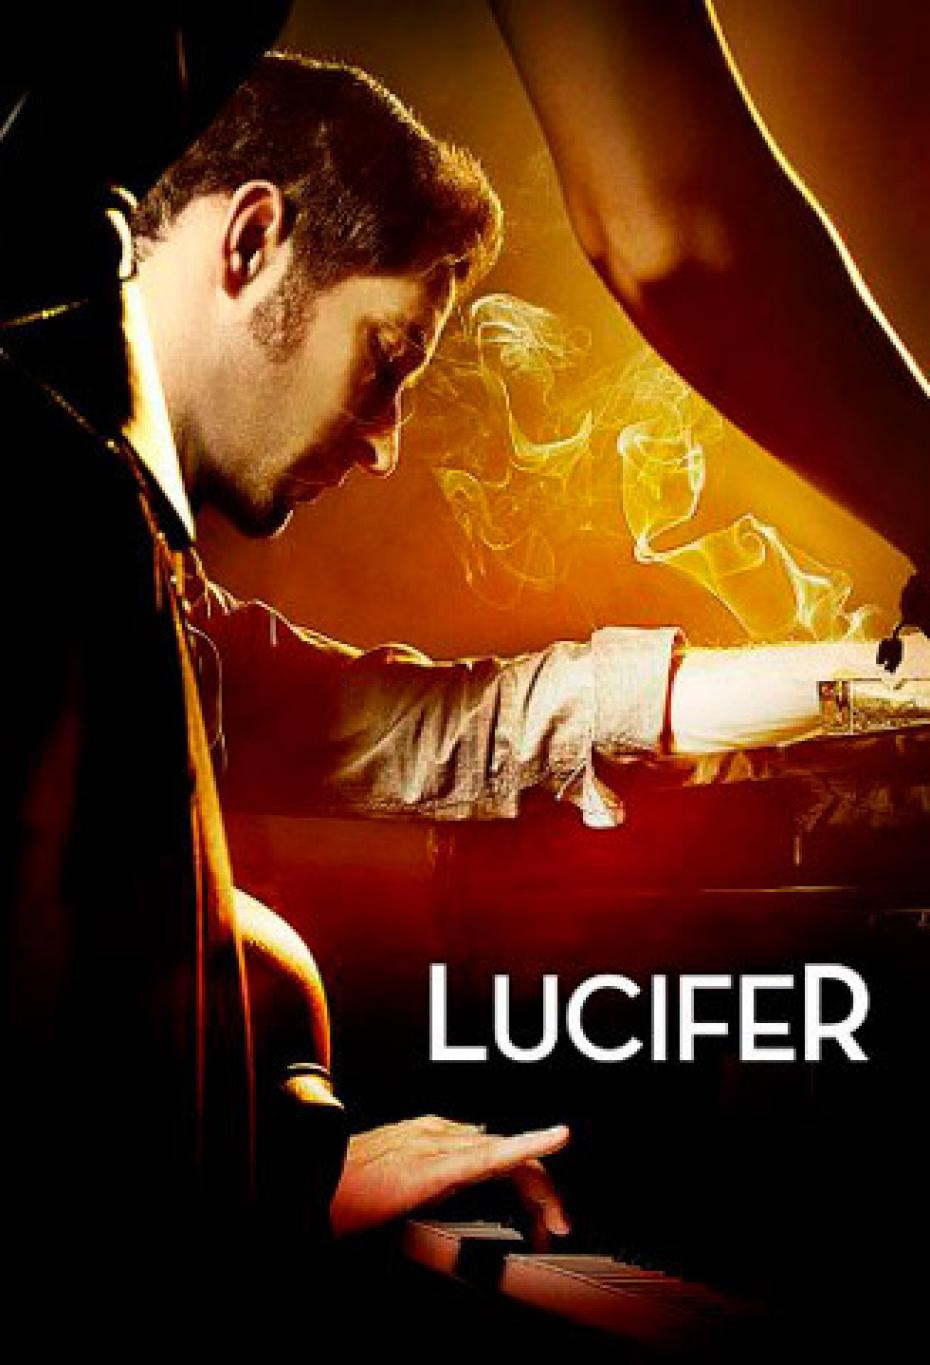 Lucifer [W-Series] Season 1